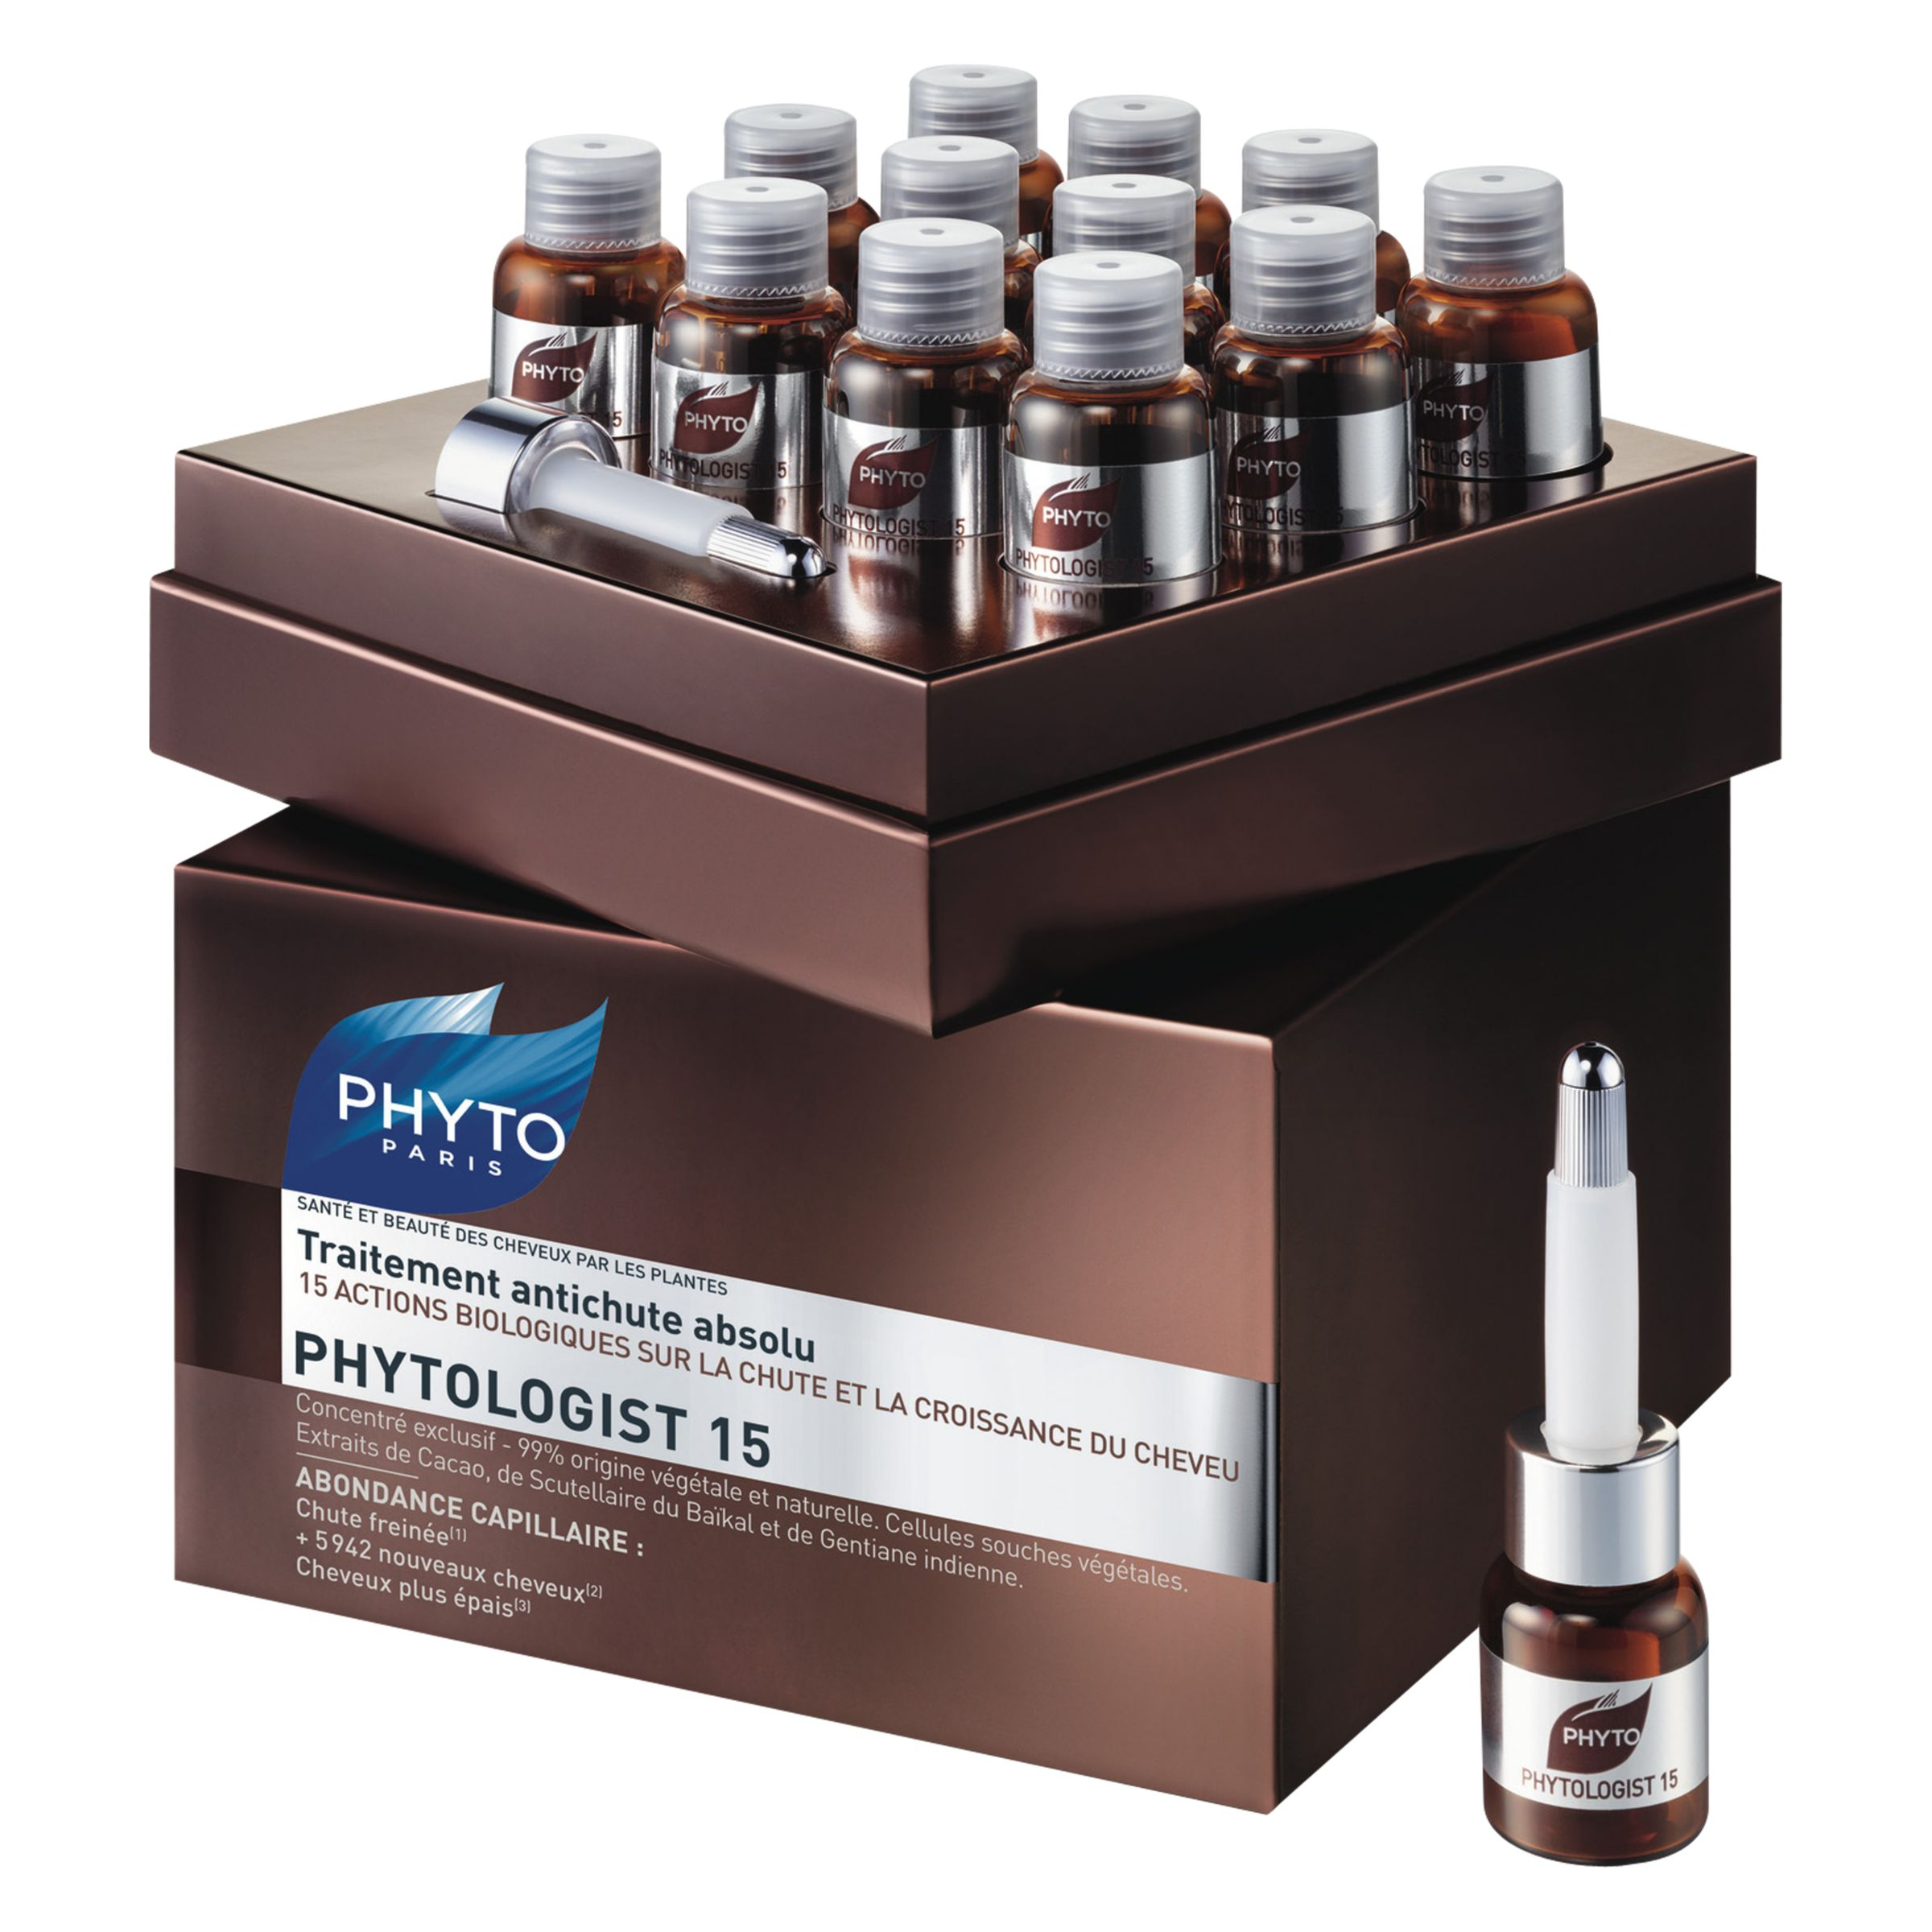 Phyto Phyto Phytologist 15 Absolute Anti-Hair Thinning Treatment, 12 x 3.5ml